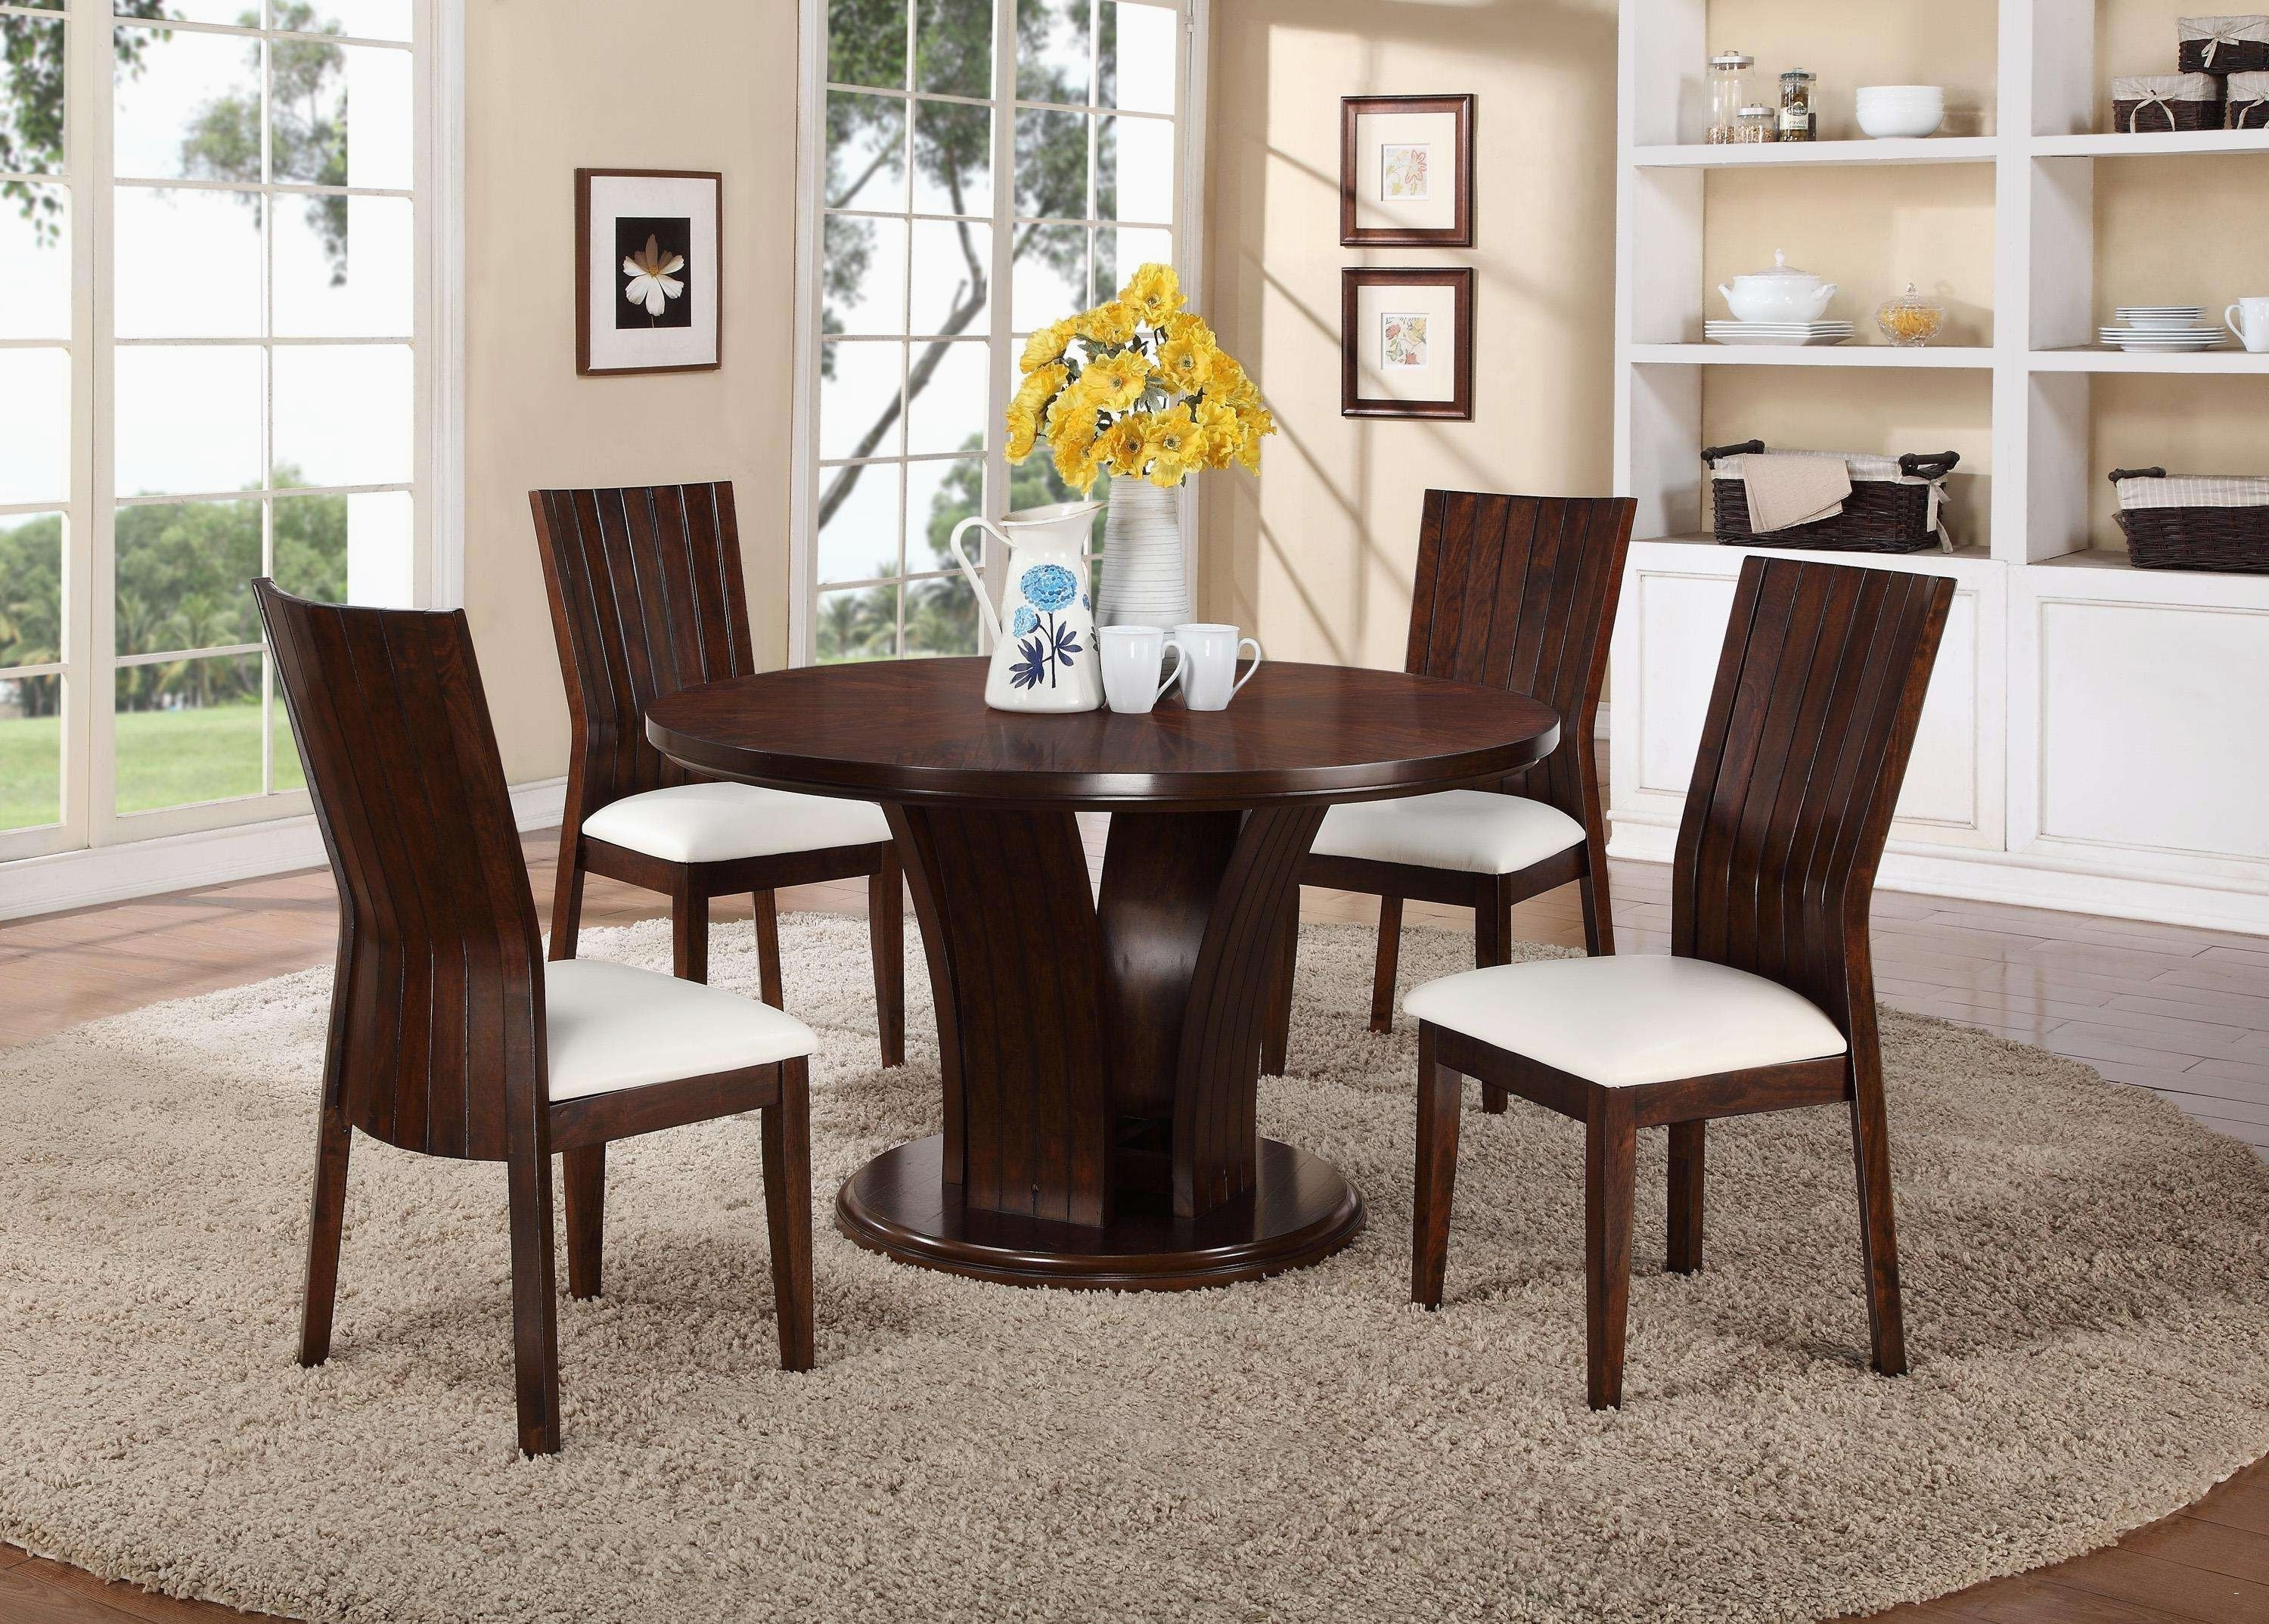 Craftsman Style Dining Room Furniture Inspirationa 6 Seat Round Regarding Best And Newest Craftsman Round Dining Tables (View 15 of 25)